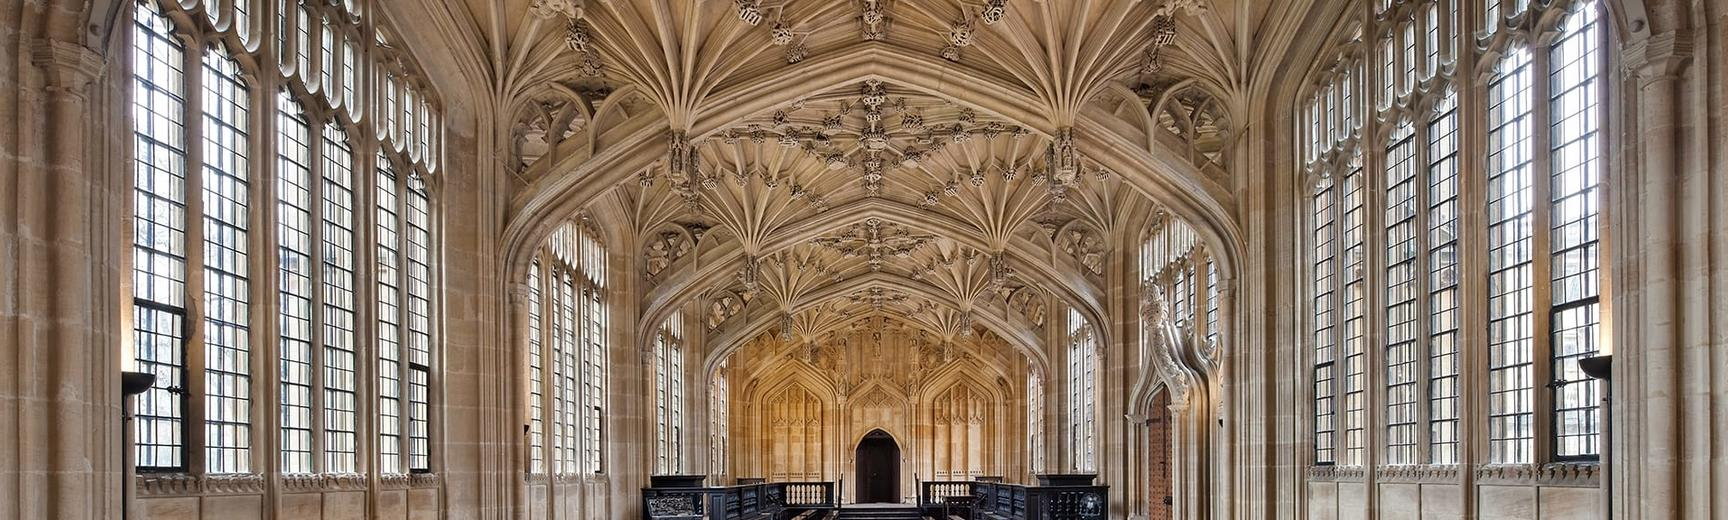 Divinity School, Old Bodleian Library